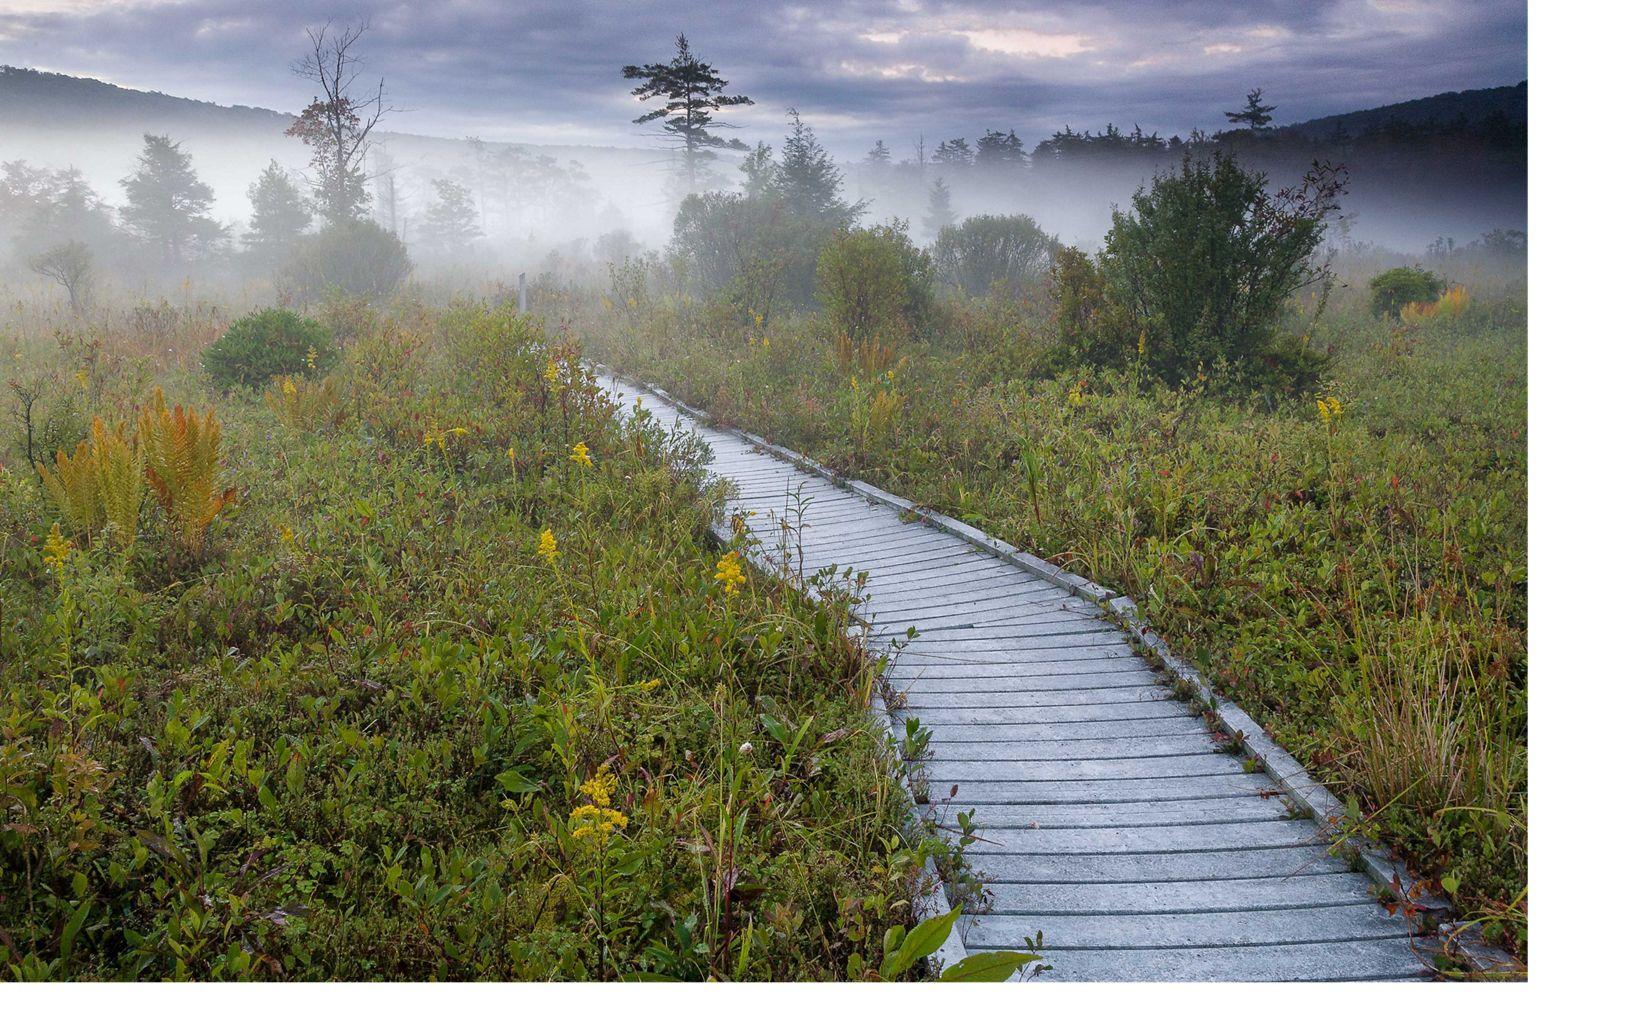 Boardwalk through the wetlands of The Nature Conservancy's Cranesville Swamp Preserve in West Virginia.